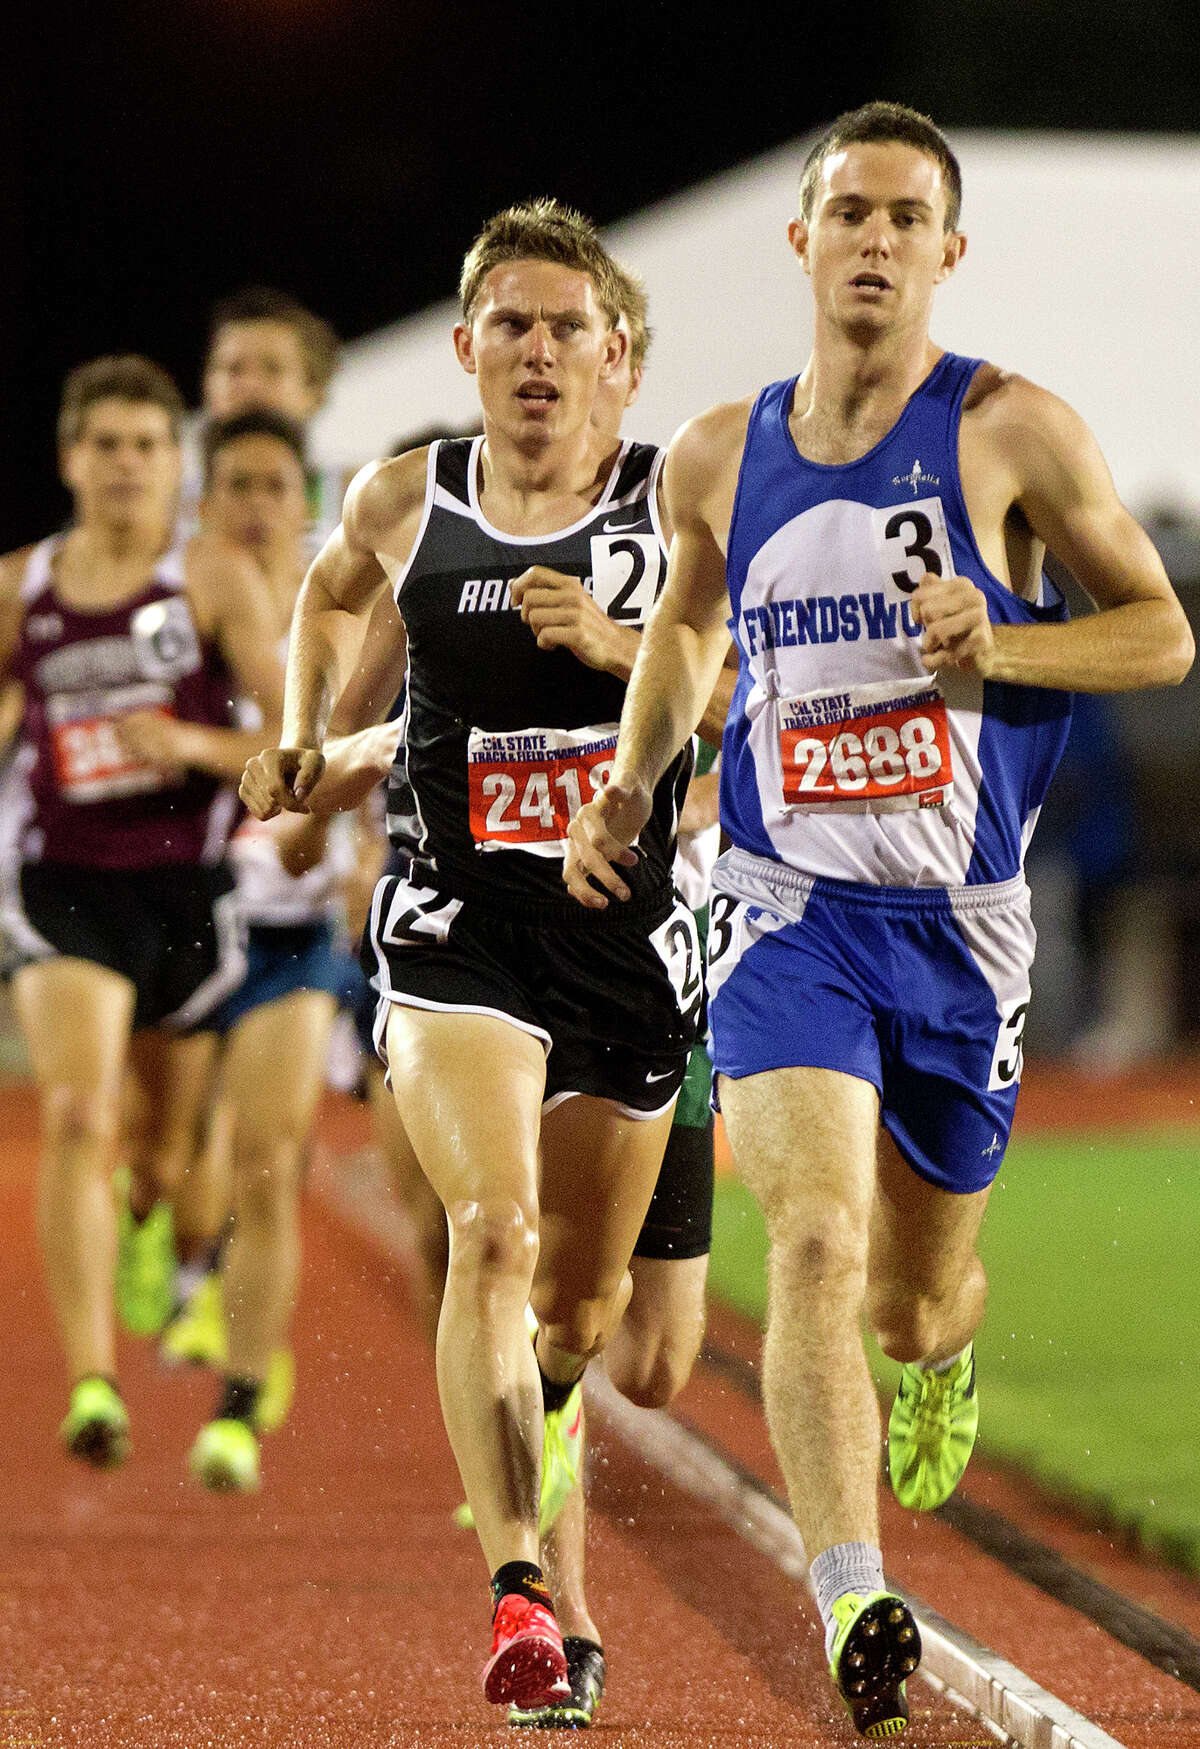 Friendswood is looking to replace two-time Class 4A state champion Ryan Teel.